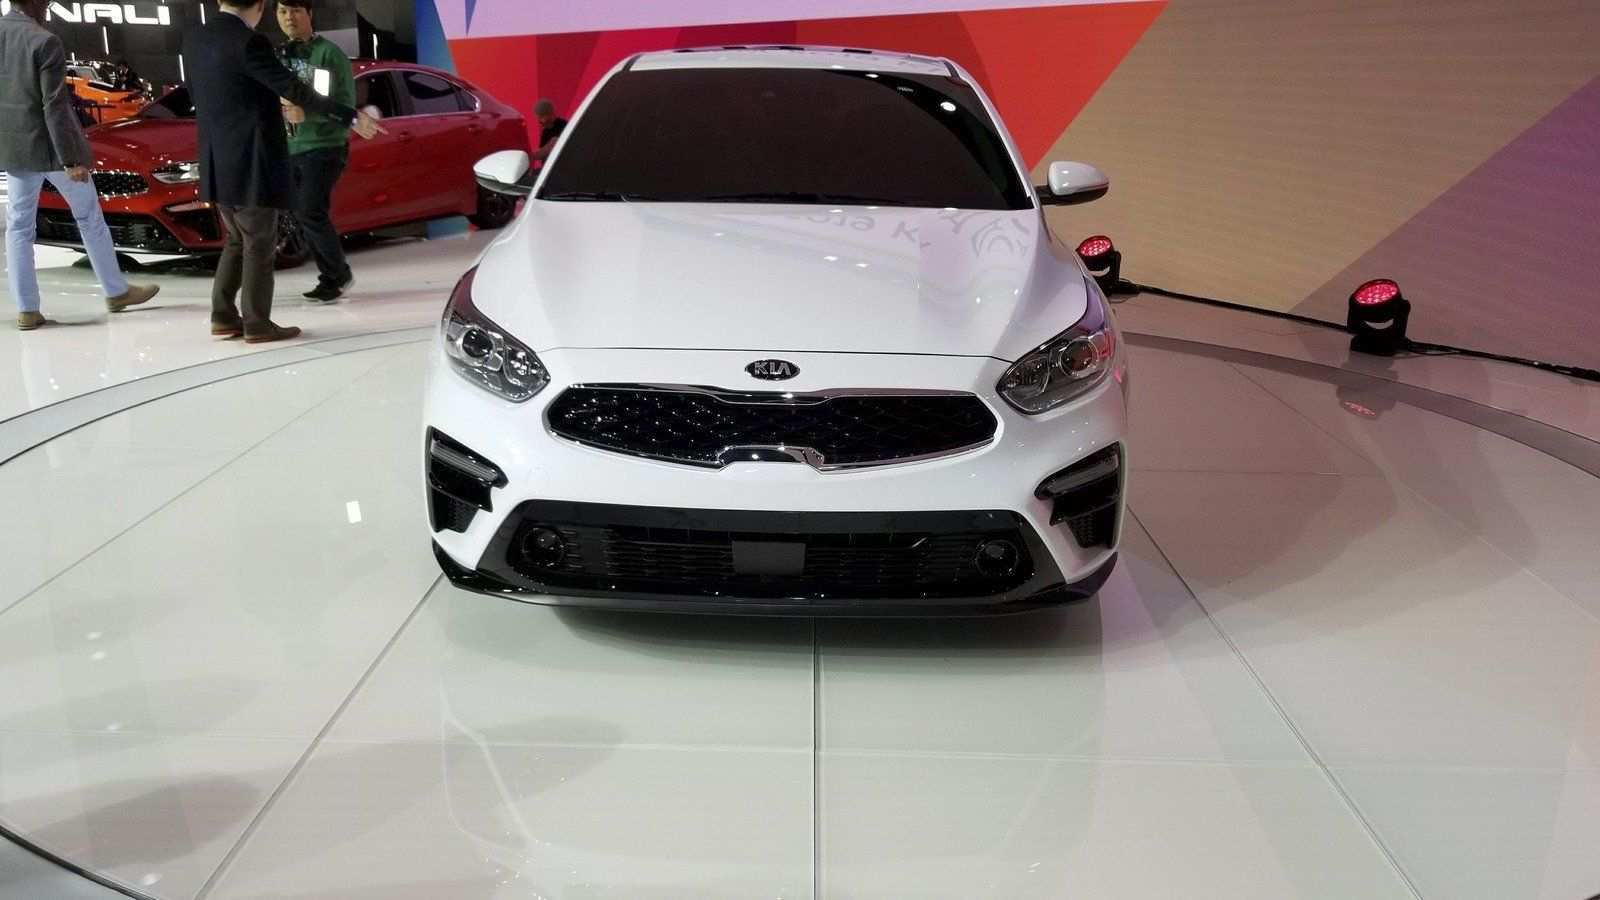 67 All New Kia Cerato 2019 Price In Egypt Prices